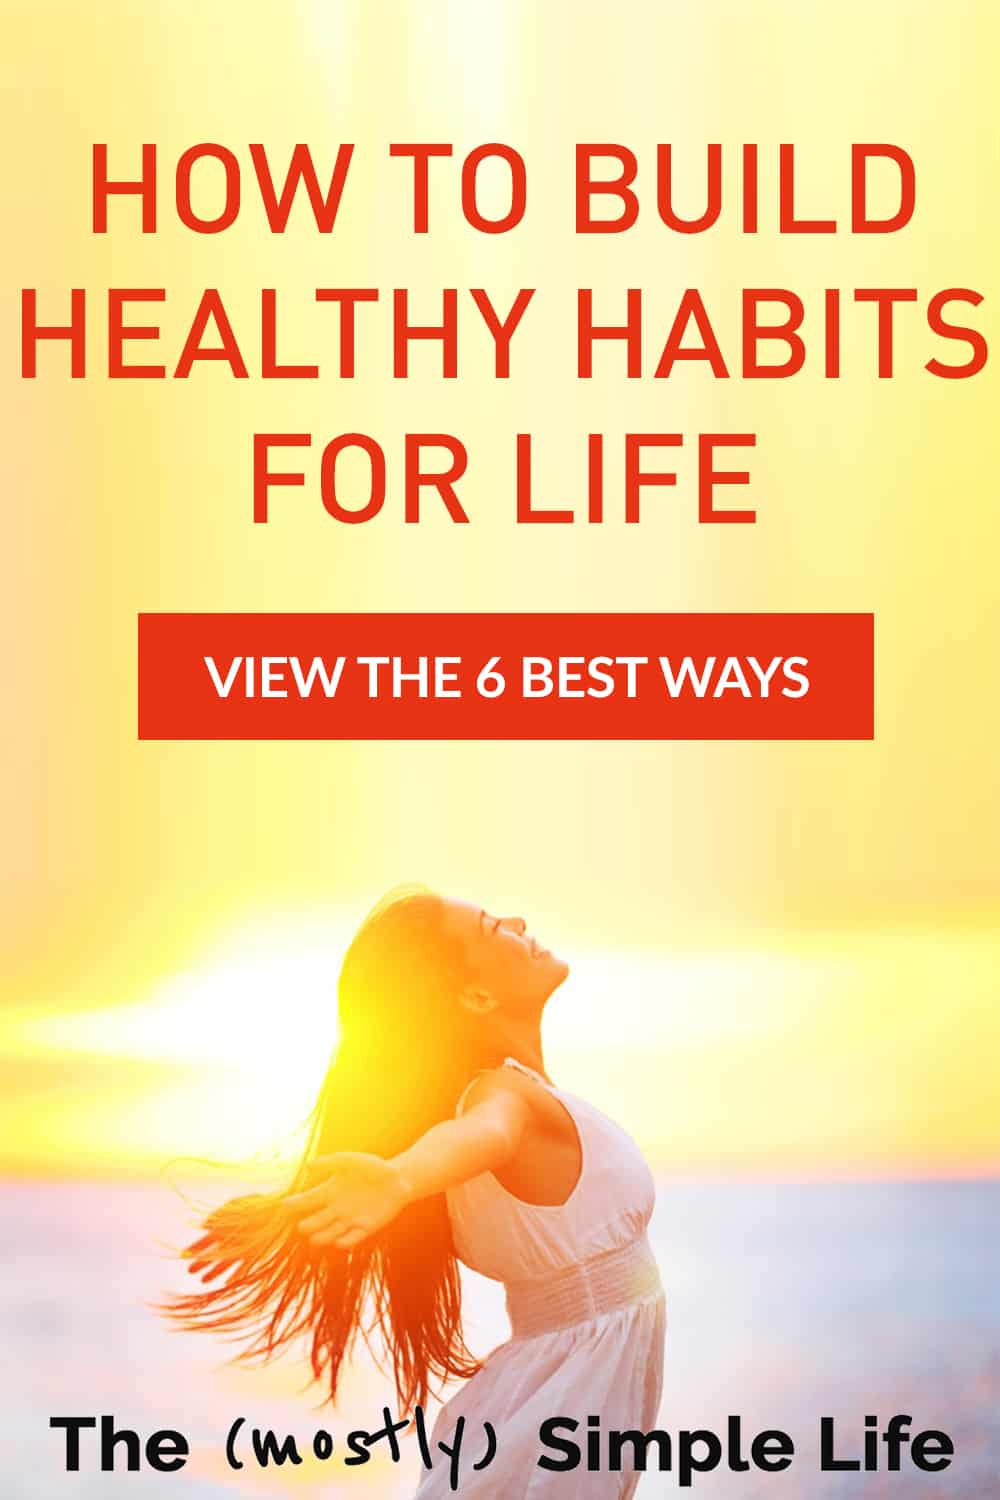 6 Tips to Build Healthy Habits for Life